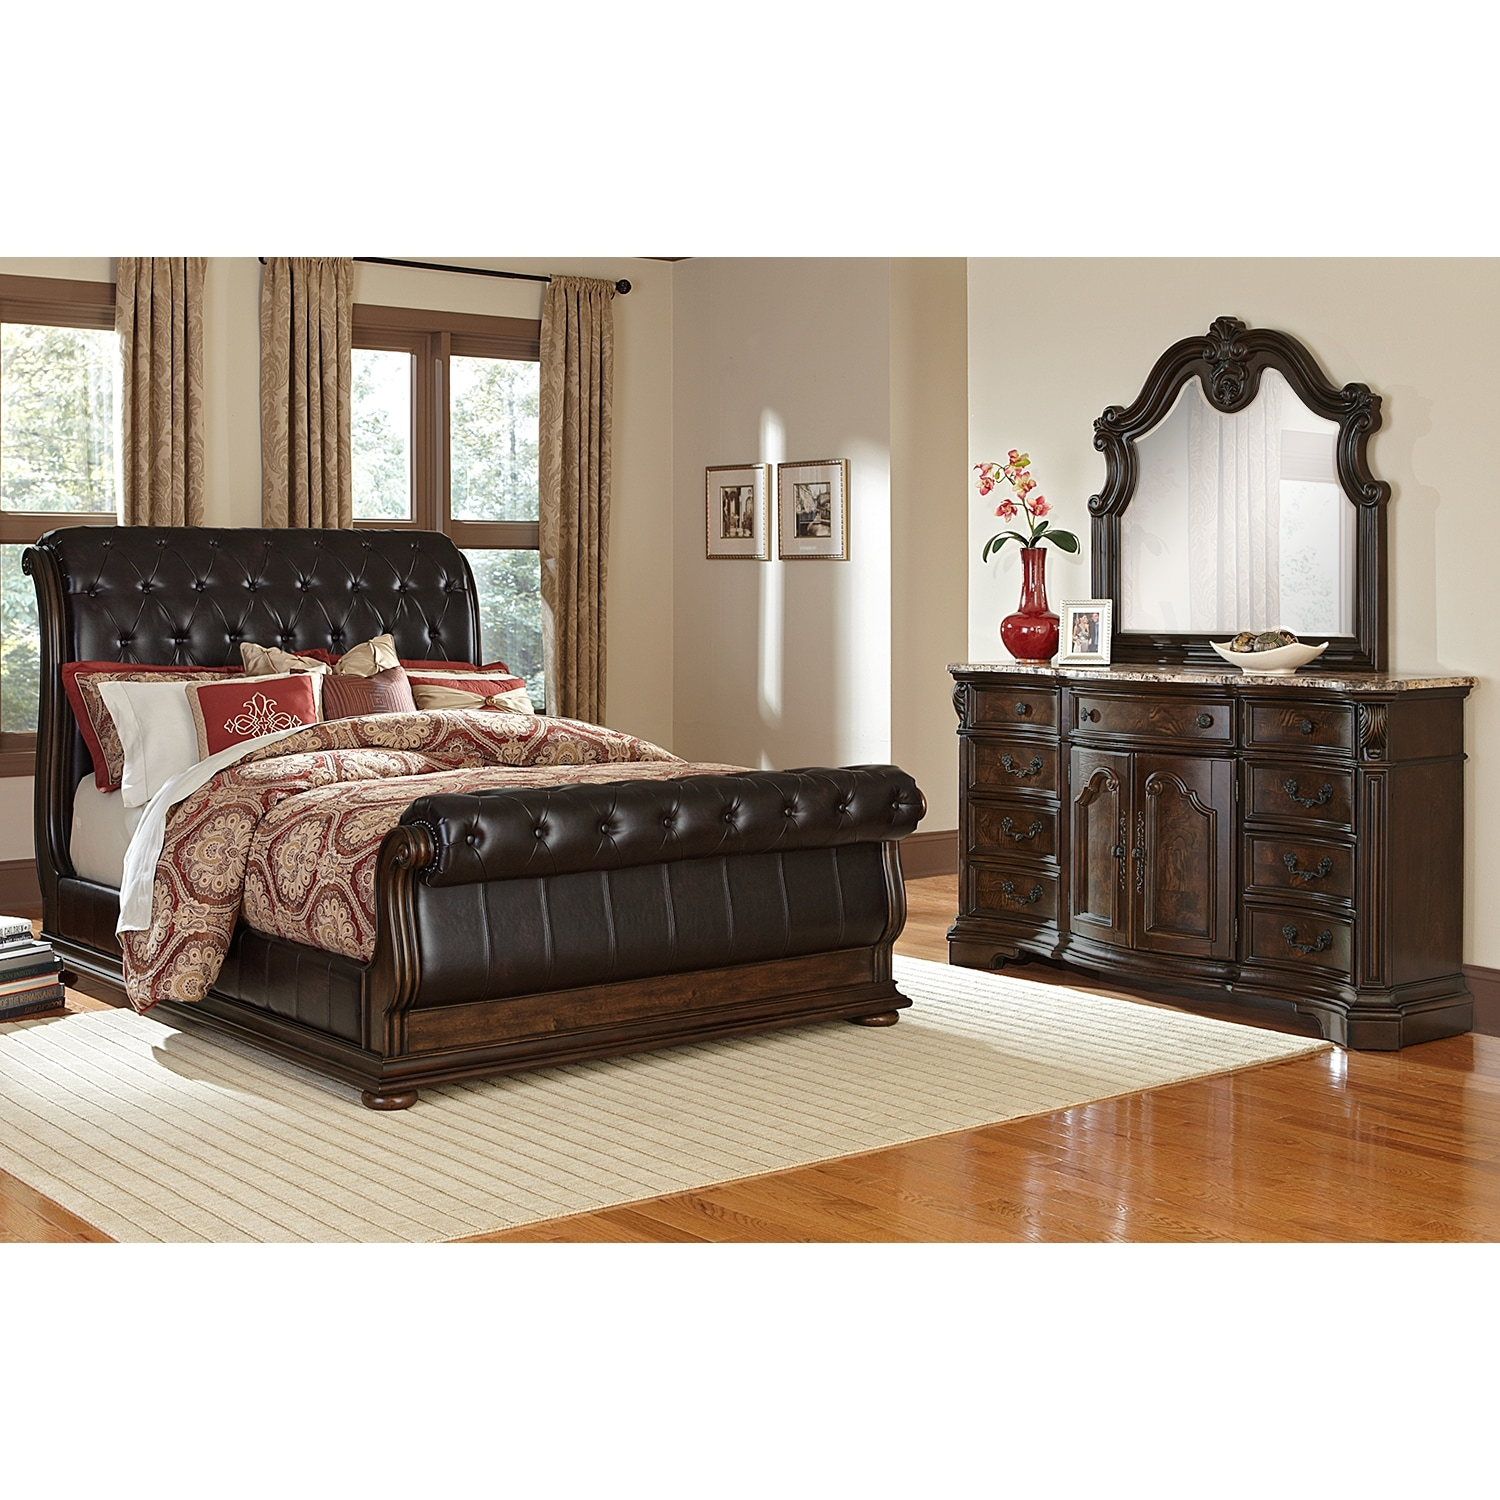 Monticello 5 Piece Queen Upholstered Sleigh Bedroom Set   Pecan